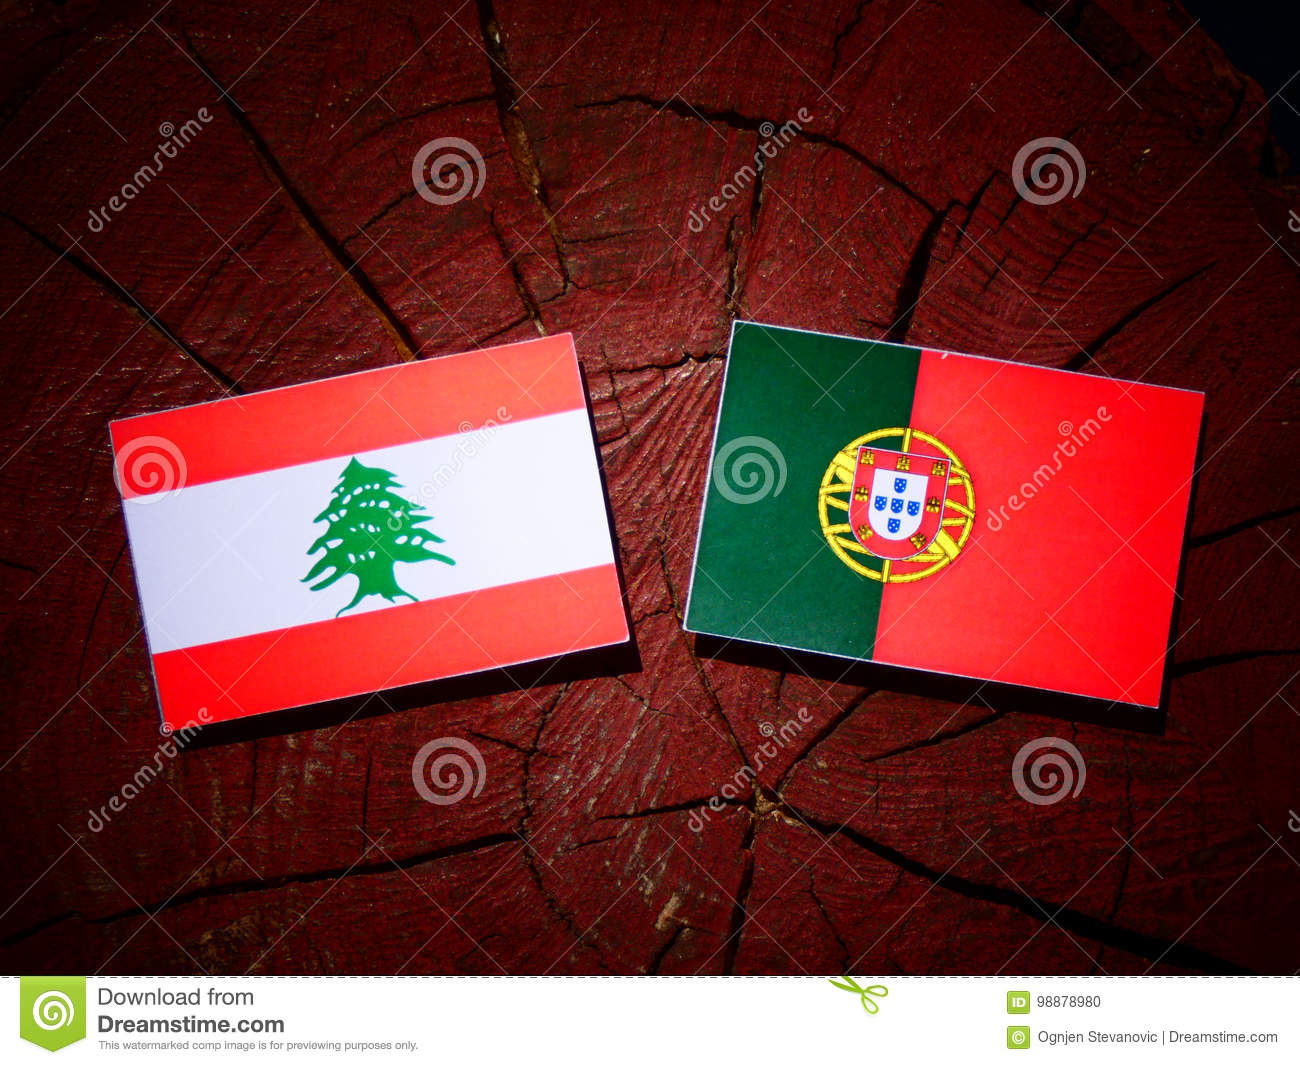 Lebanese flag with Portuguese flag on a tree stump isolated